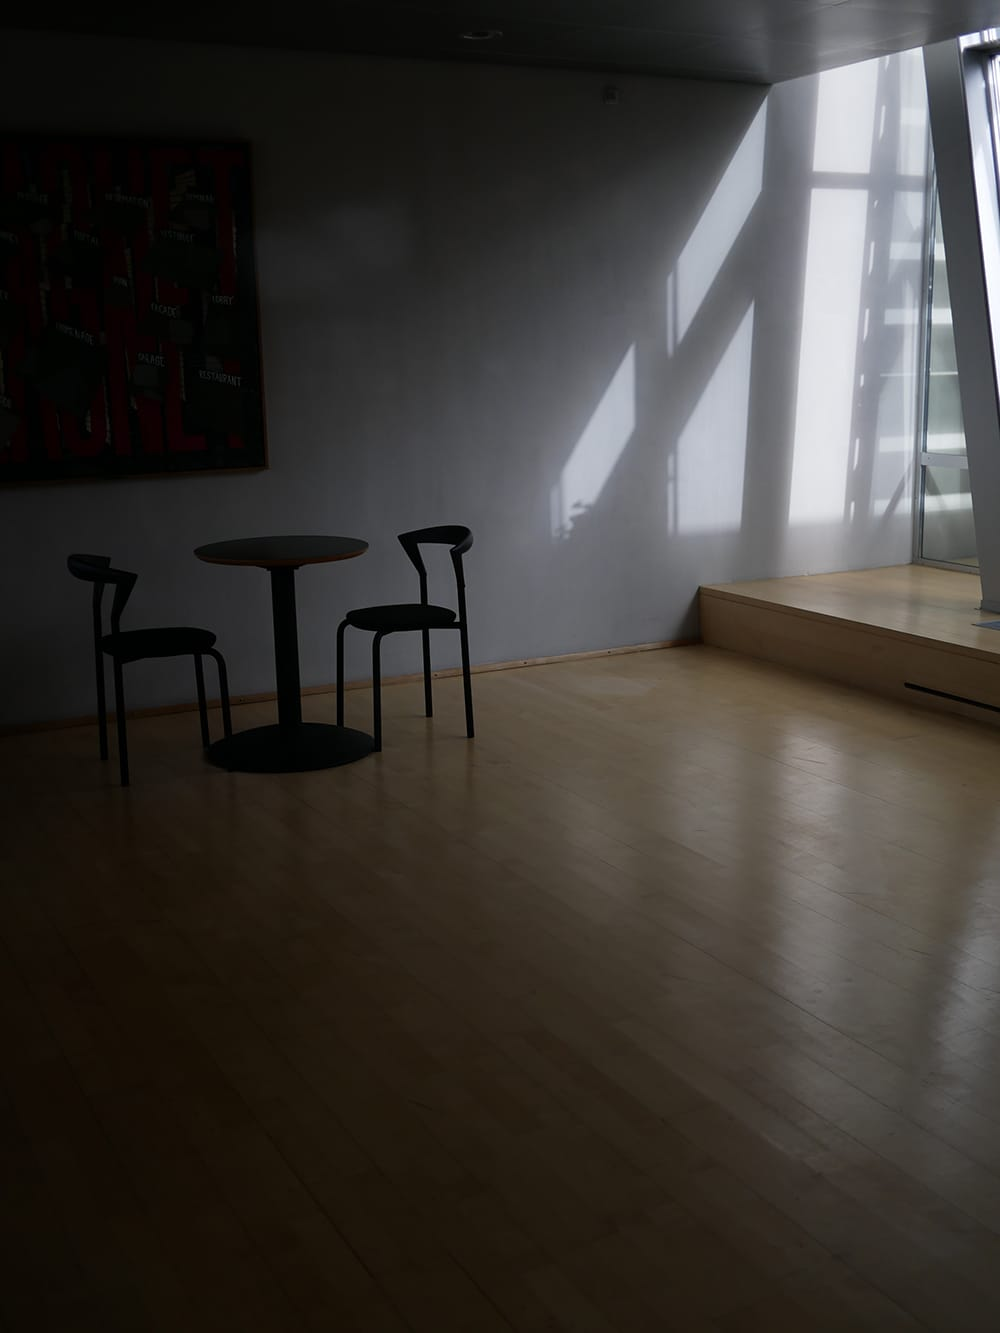 Shaded interior with two chairs and table in the corner. Copenhagen